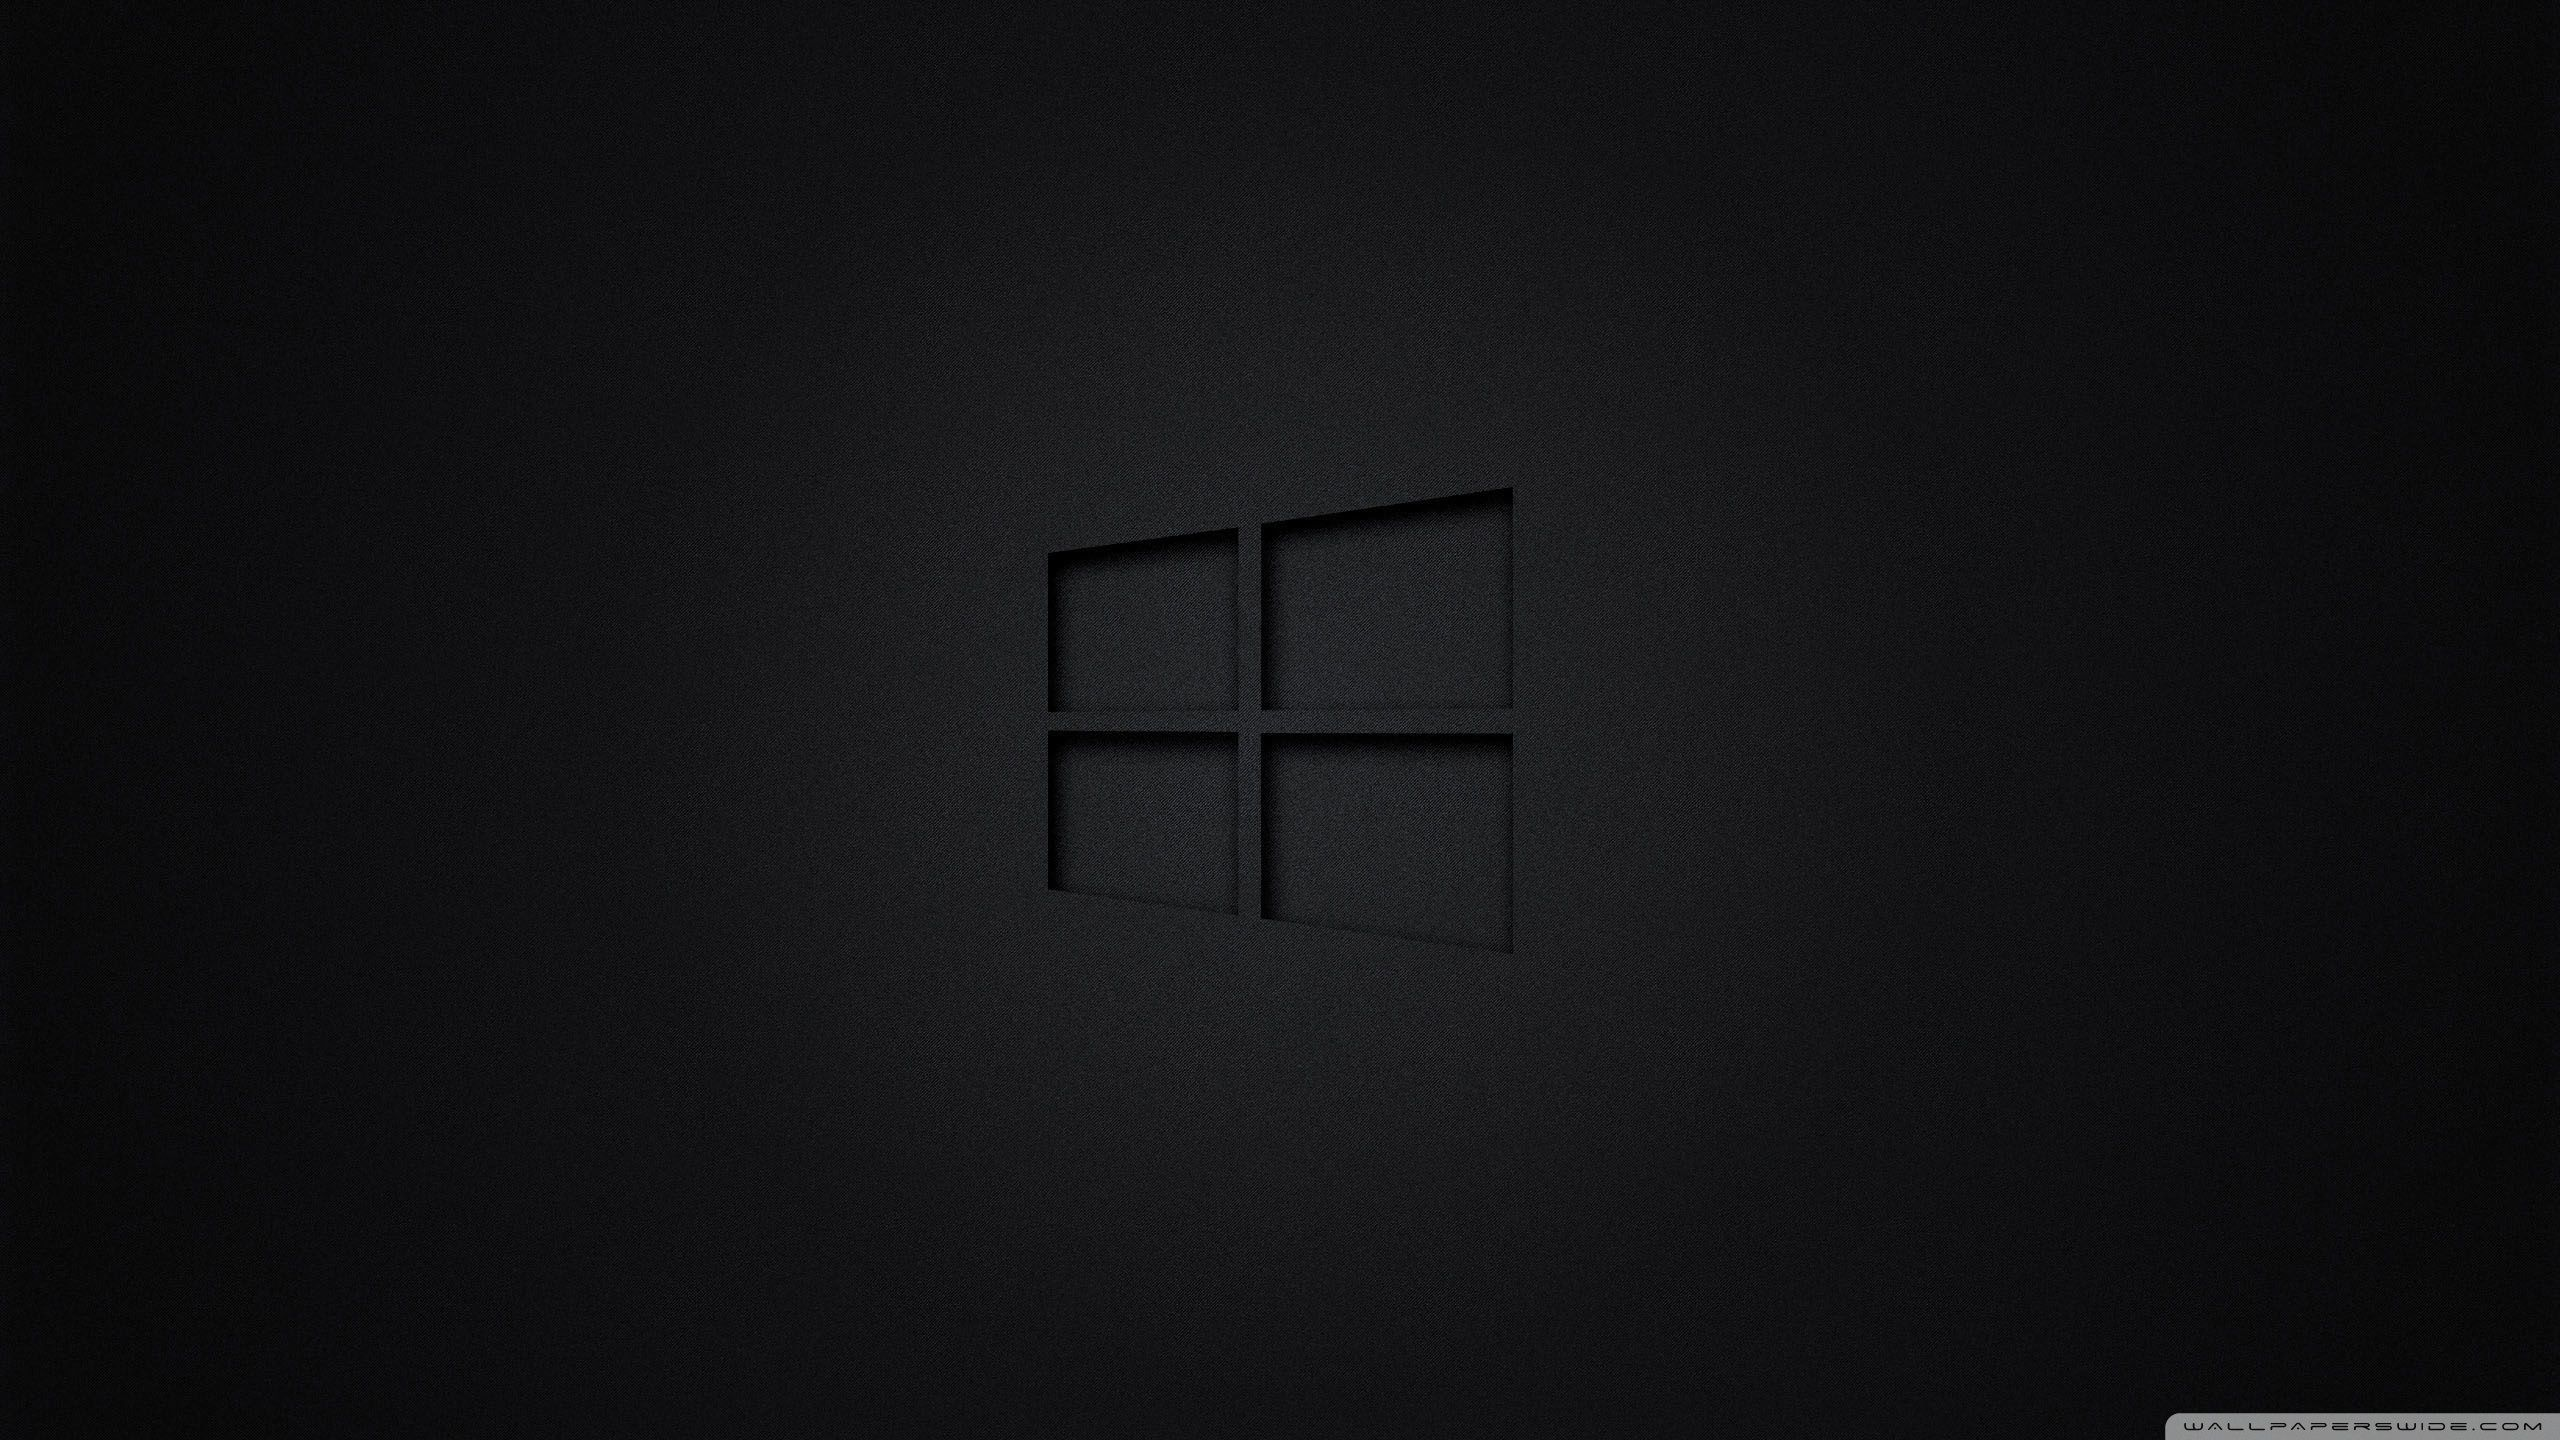 10 New Windows Wallpaper Hd Black Full Hd 1080p For Pc